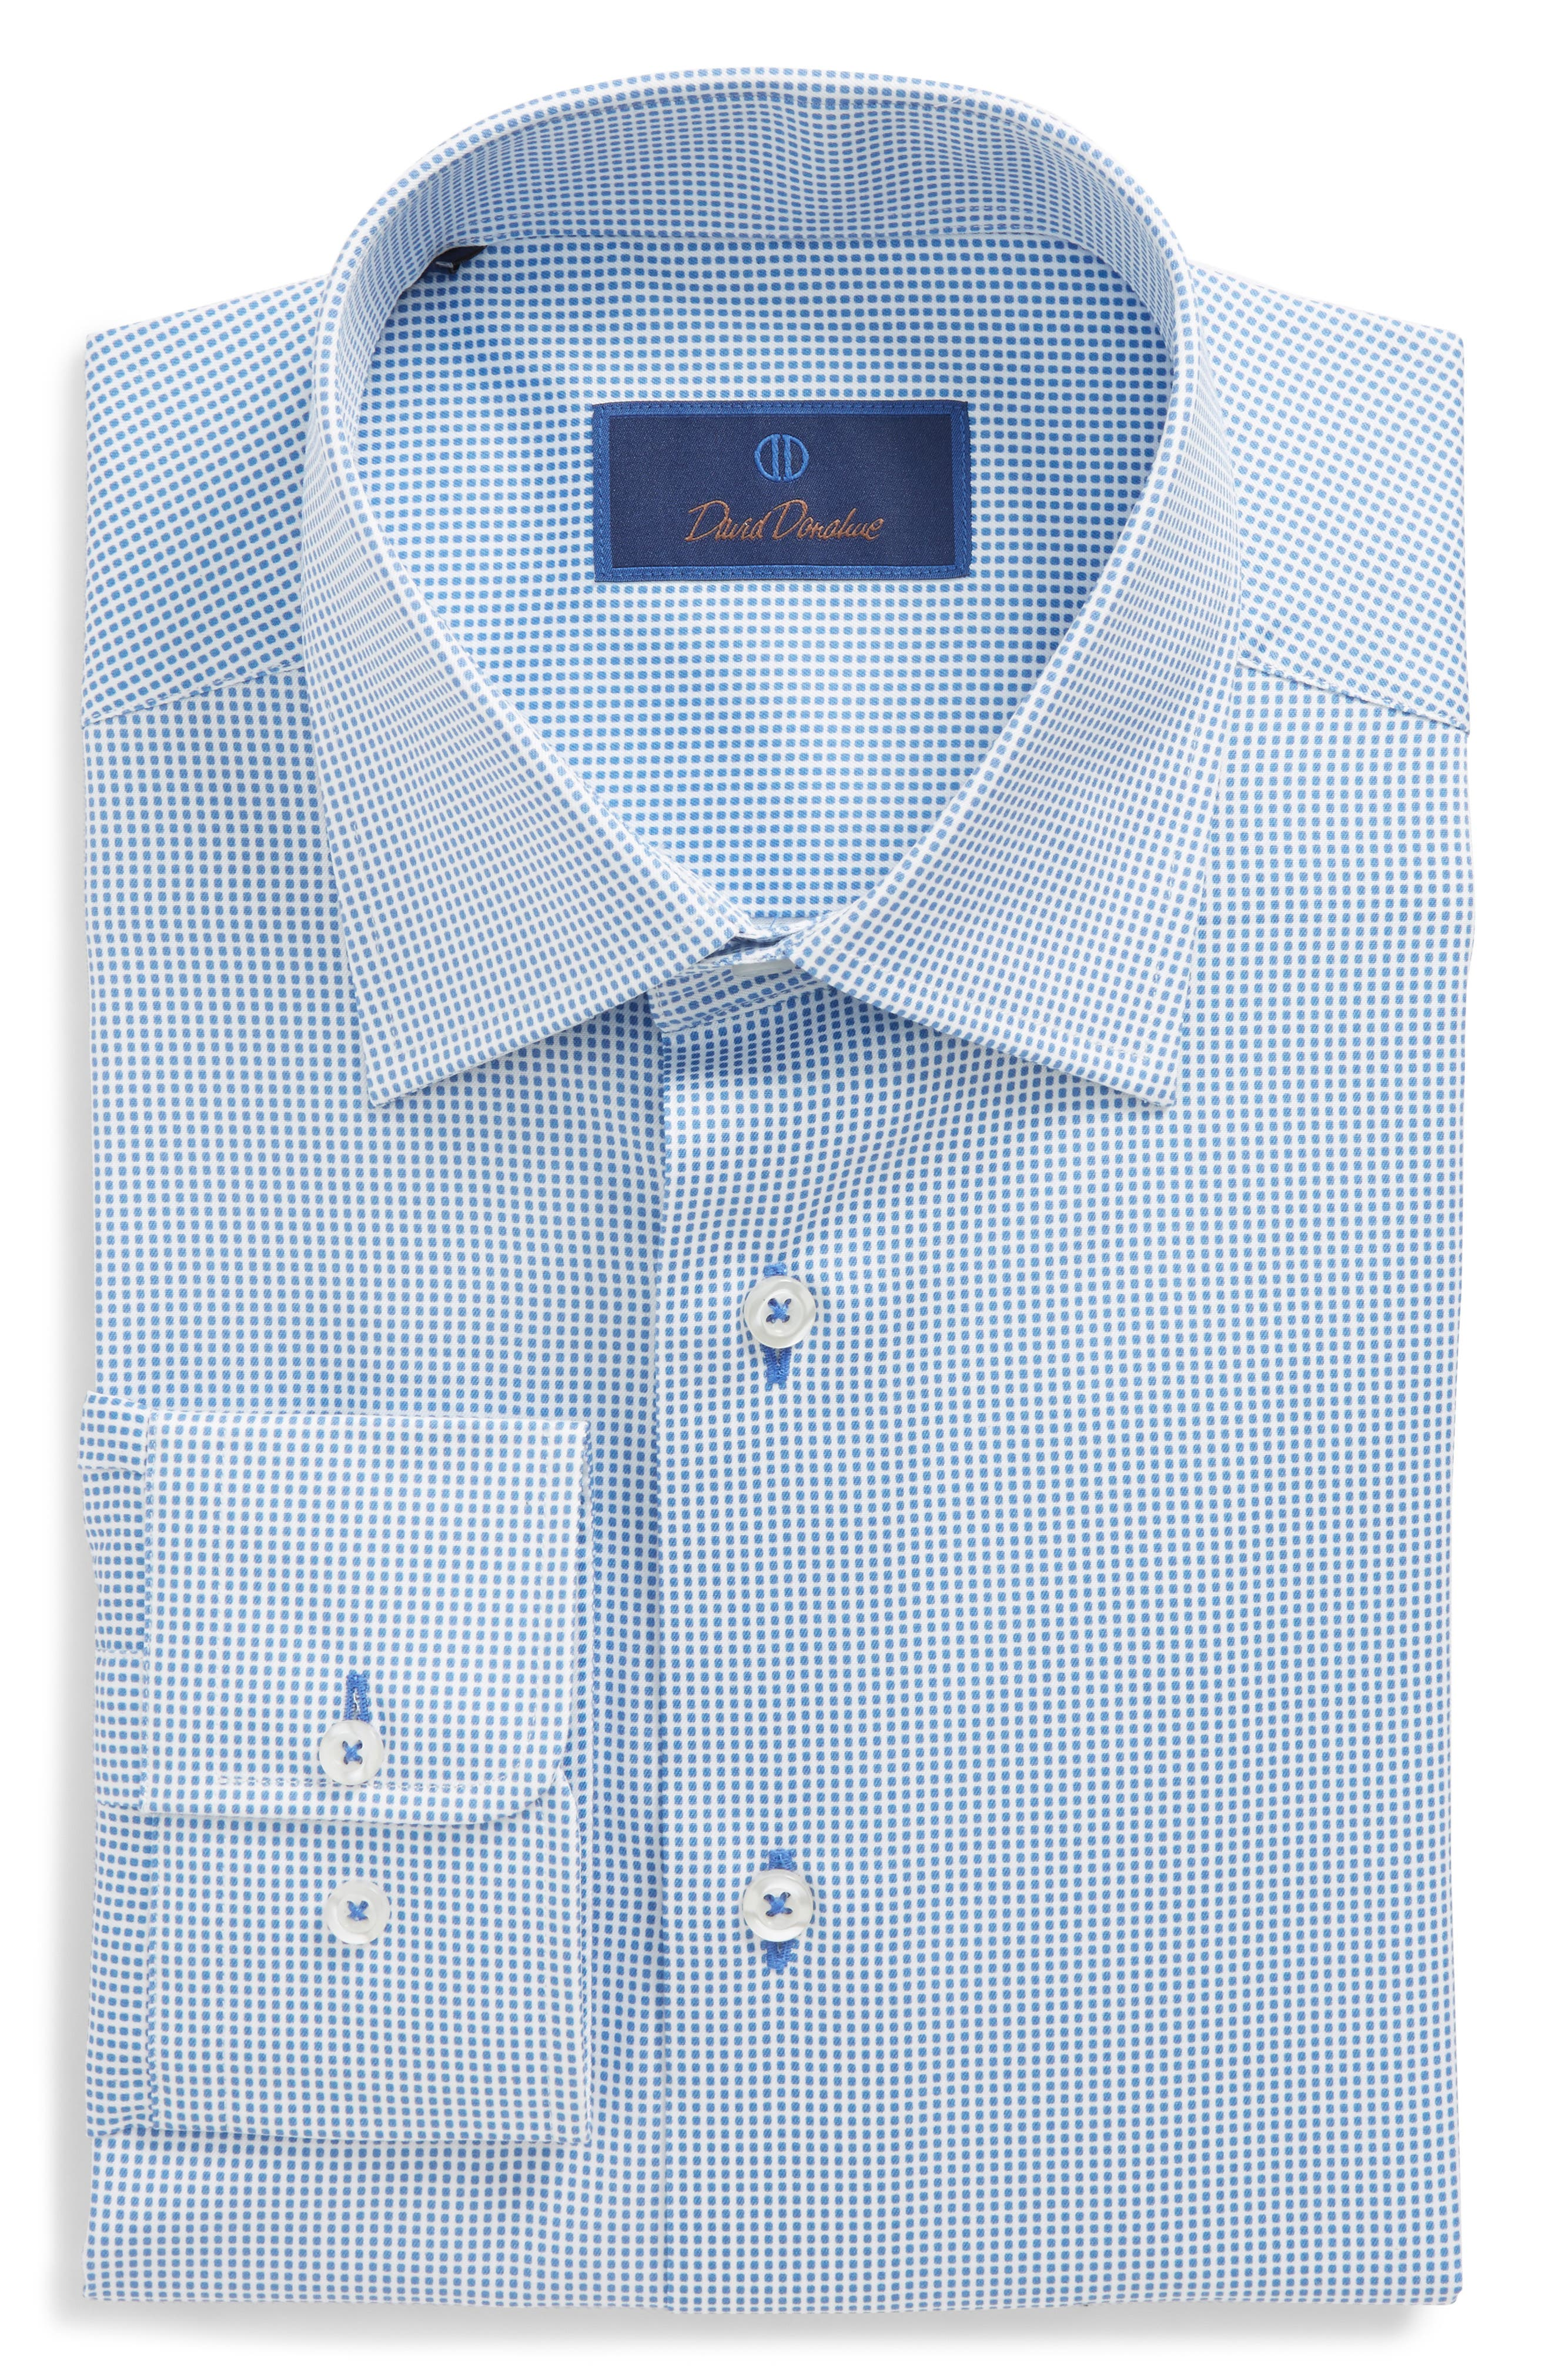 Regular Fit Dot Dress Shirt,                             Main thumbnail 1, color,